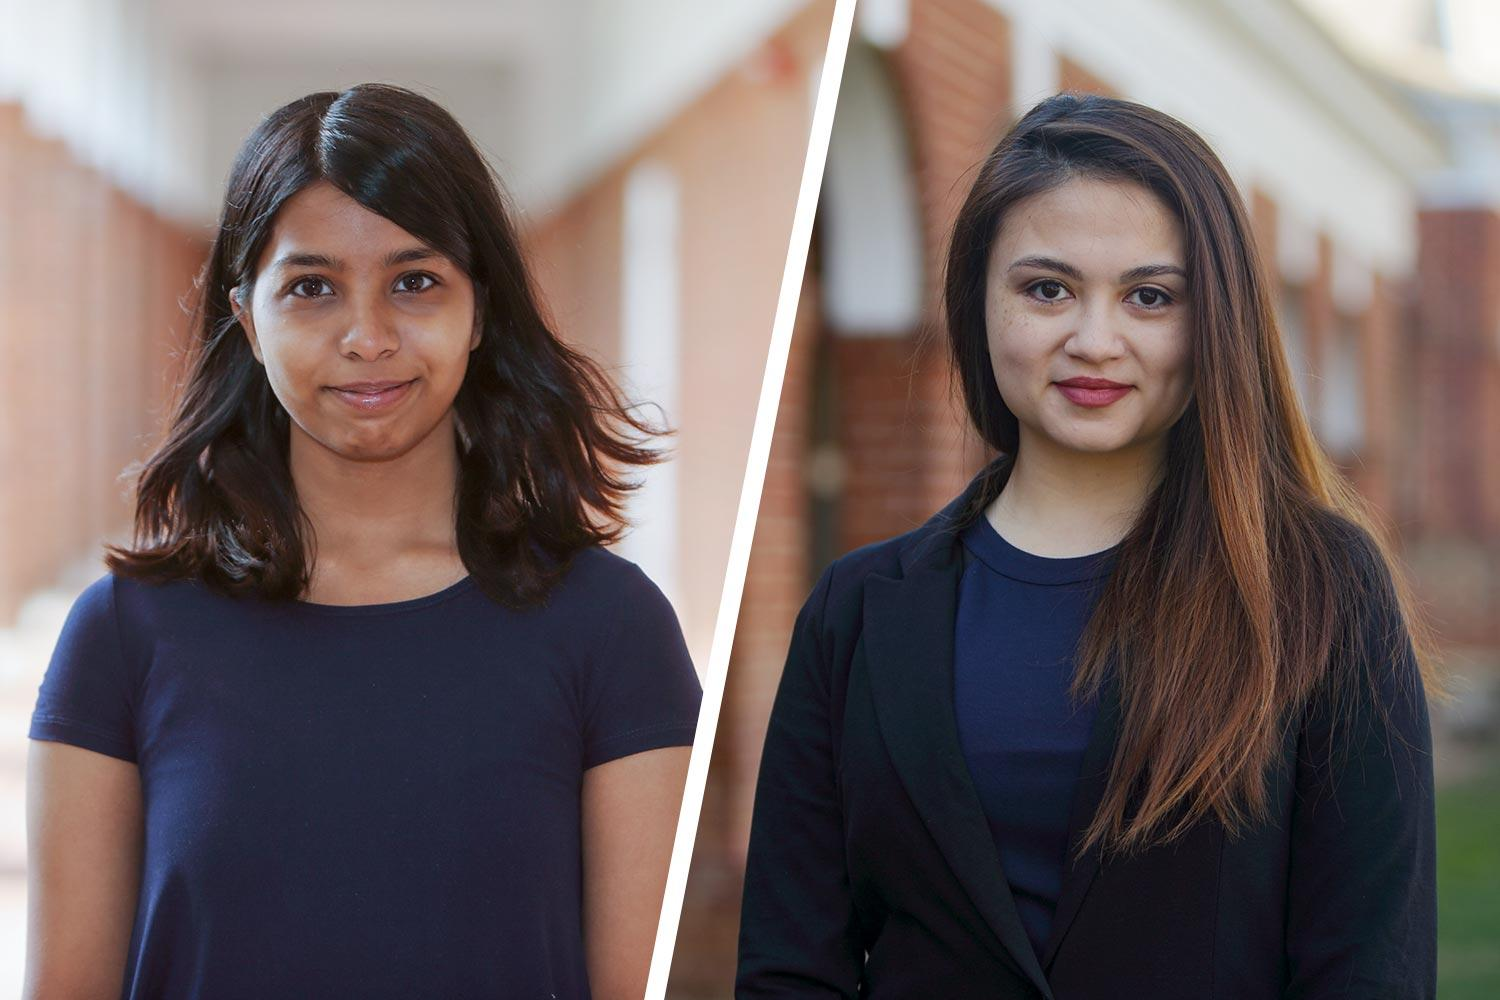 quality design bd5be 447e2 First-year student Navya Annapareddy will study maternal health in Rwanda.  Jordan Beeker, a second-year student, will look at the demographics of the  female ...